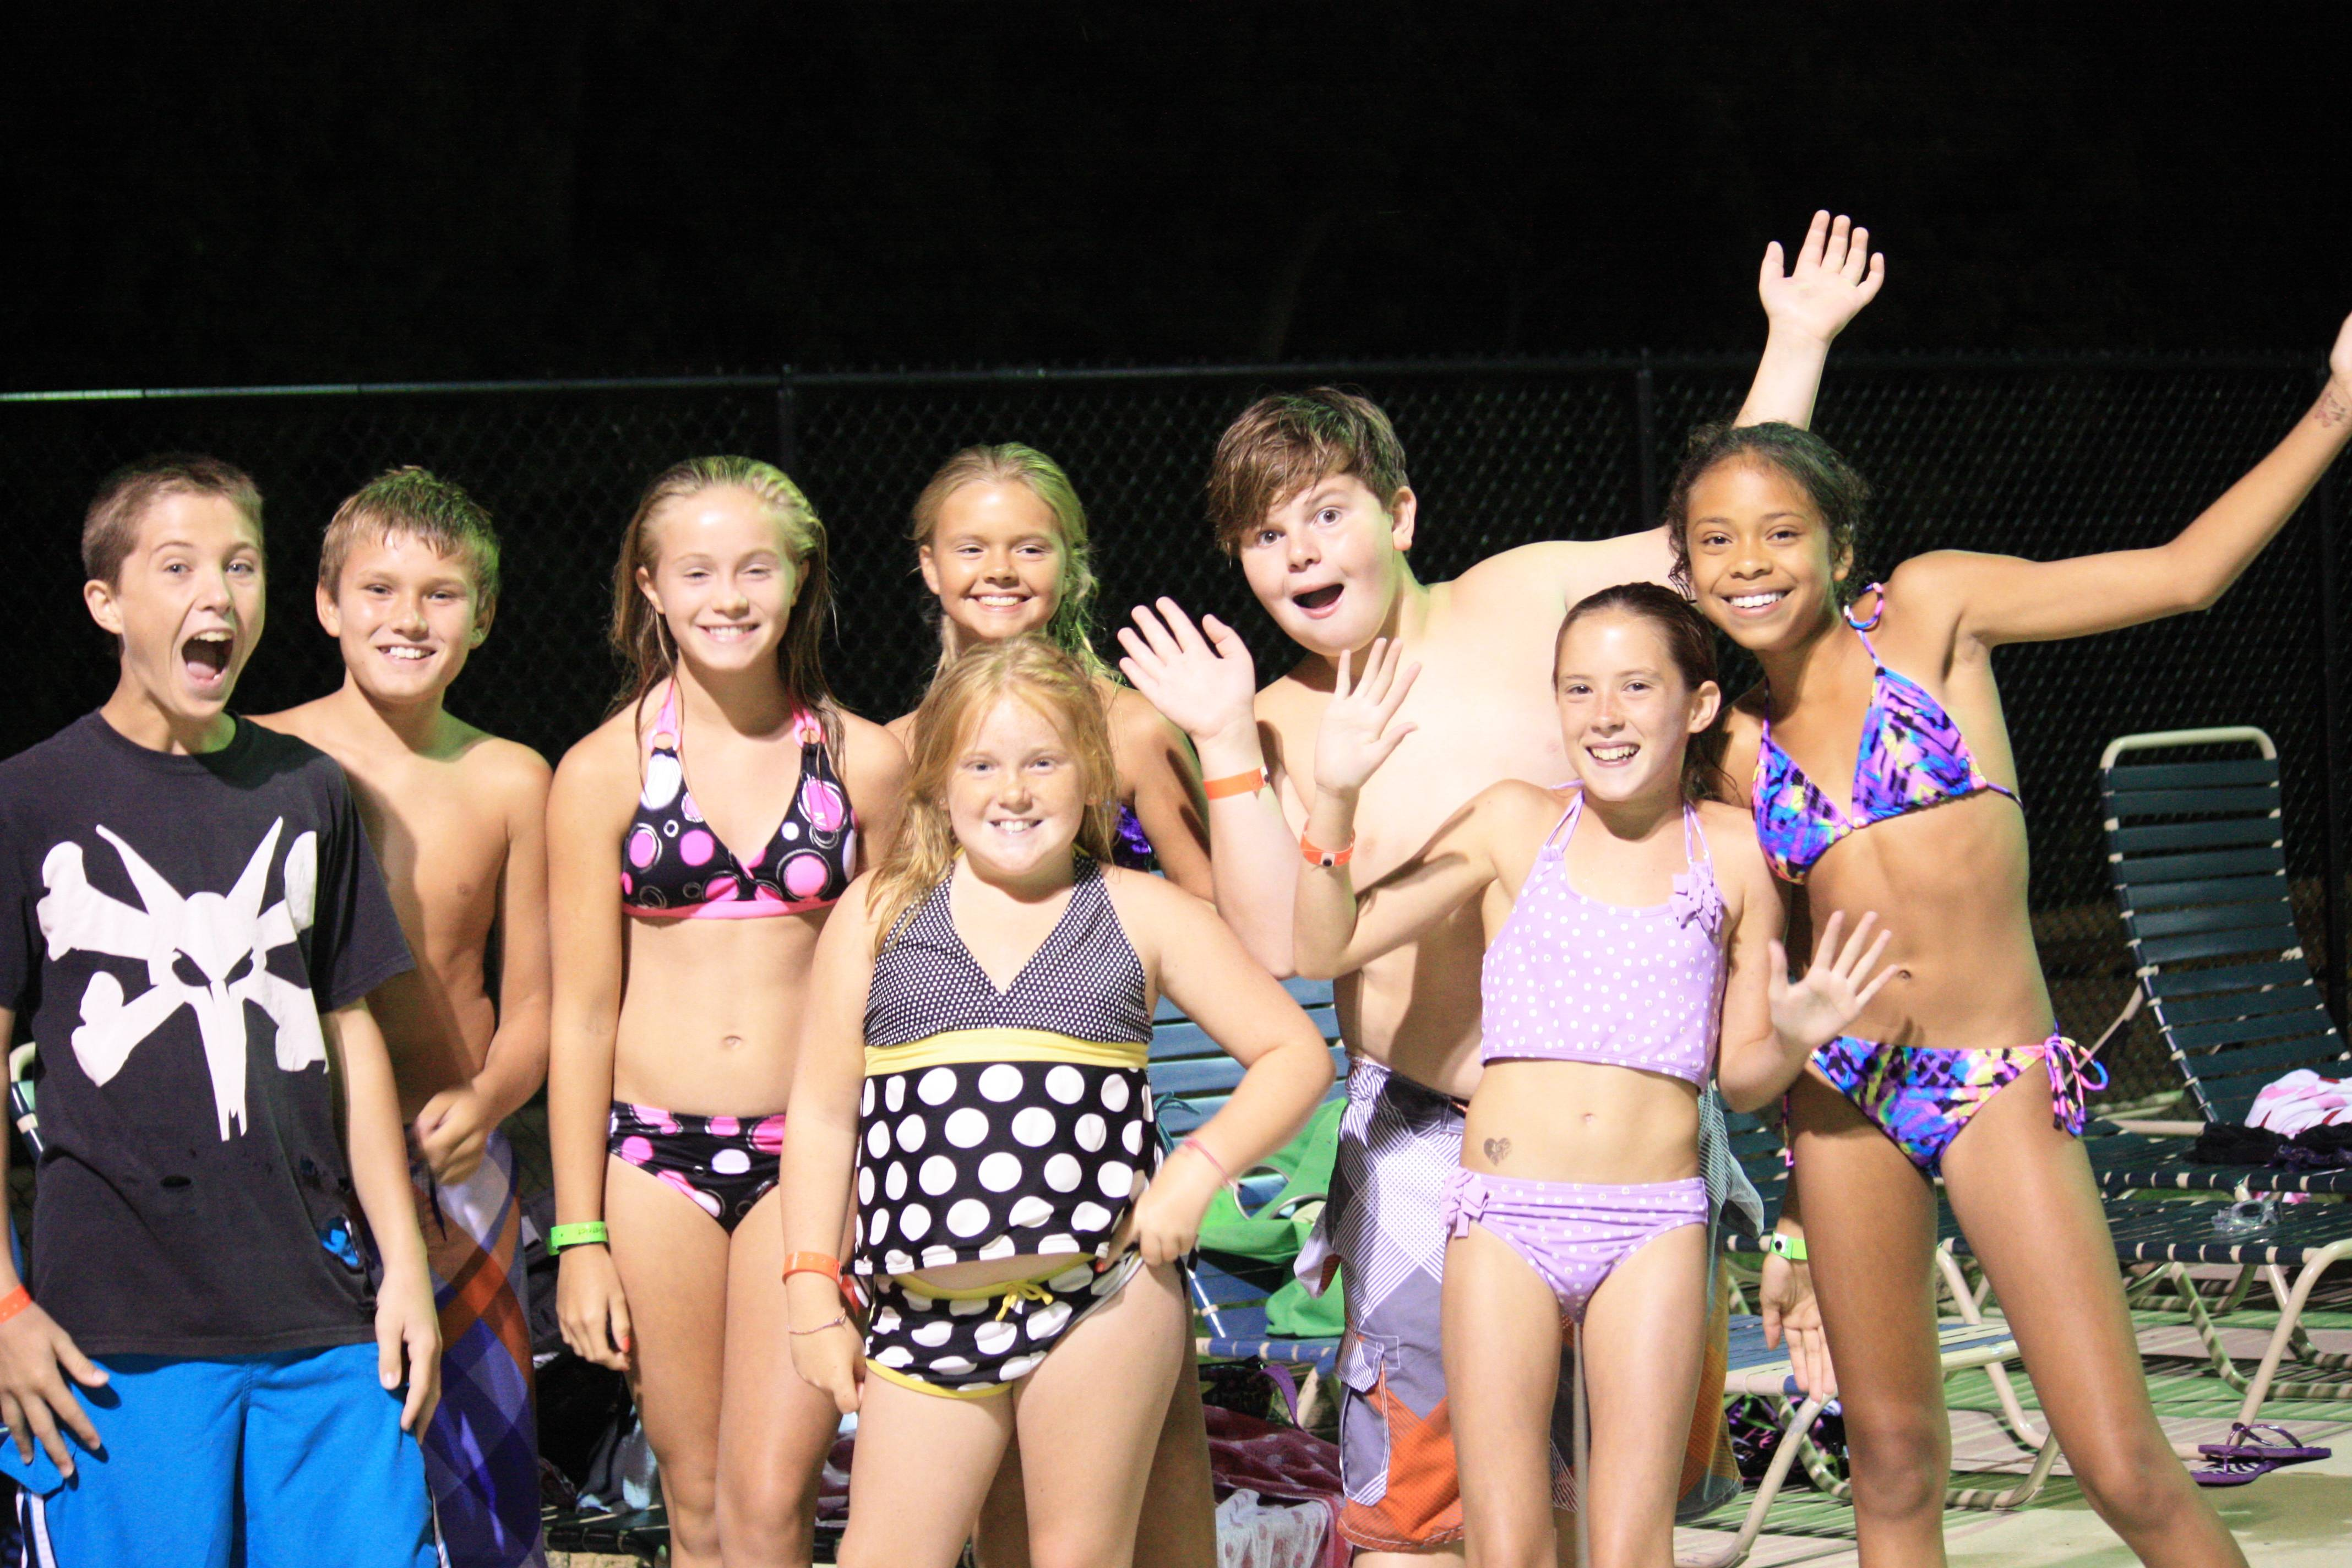 Kids enjoying the Tween Pool Party in 2012.